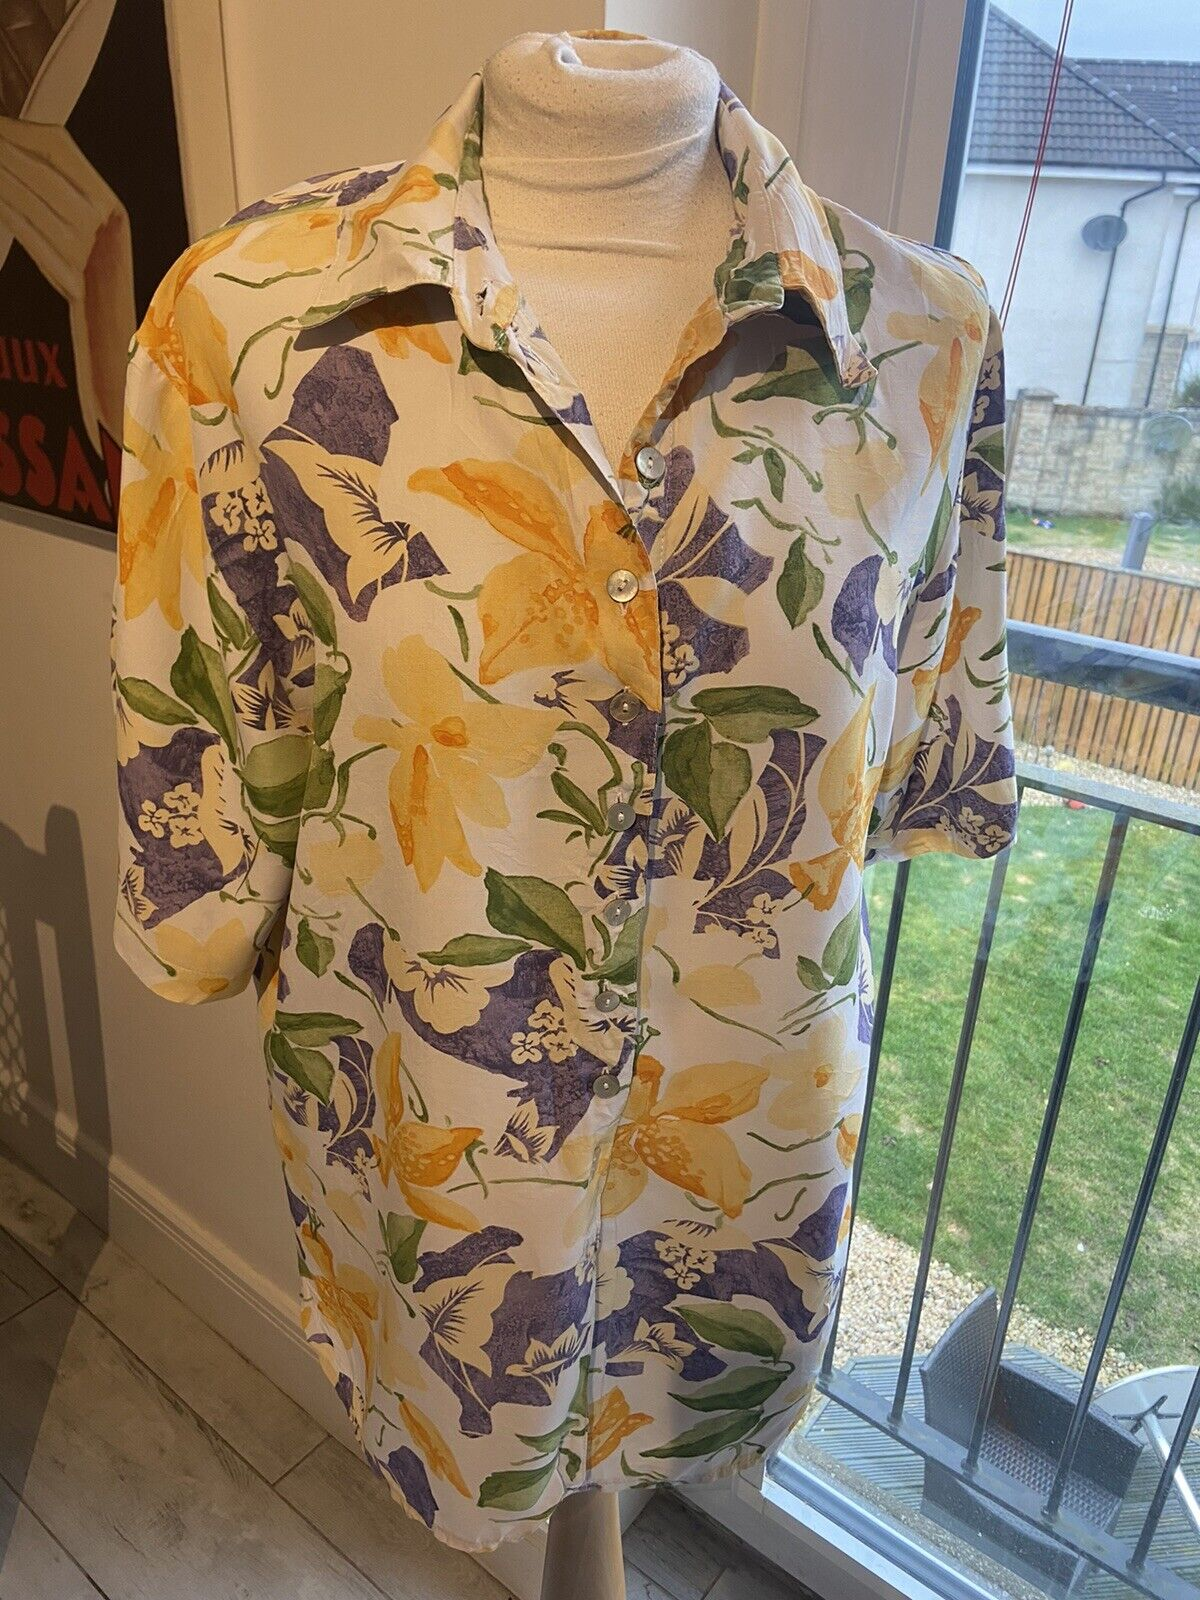 VINTAGE 80's WHITE & YELLOW FLORAL NEW WAVE BLOUSE SHIRT LARGE UK 16